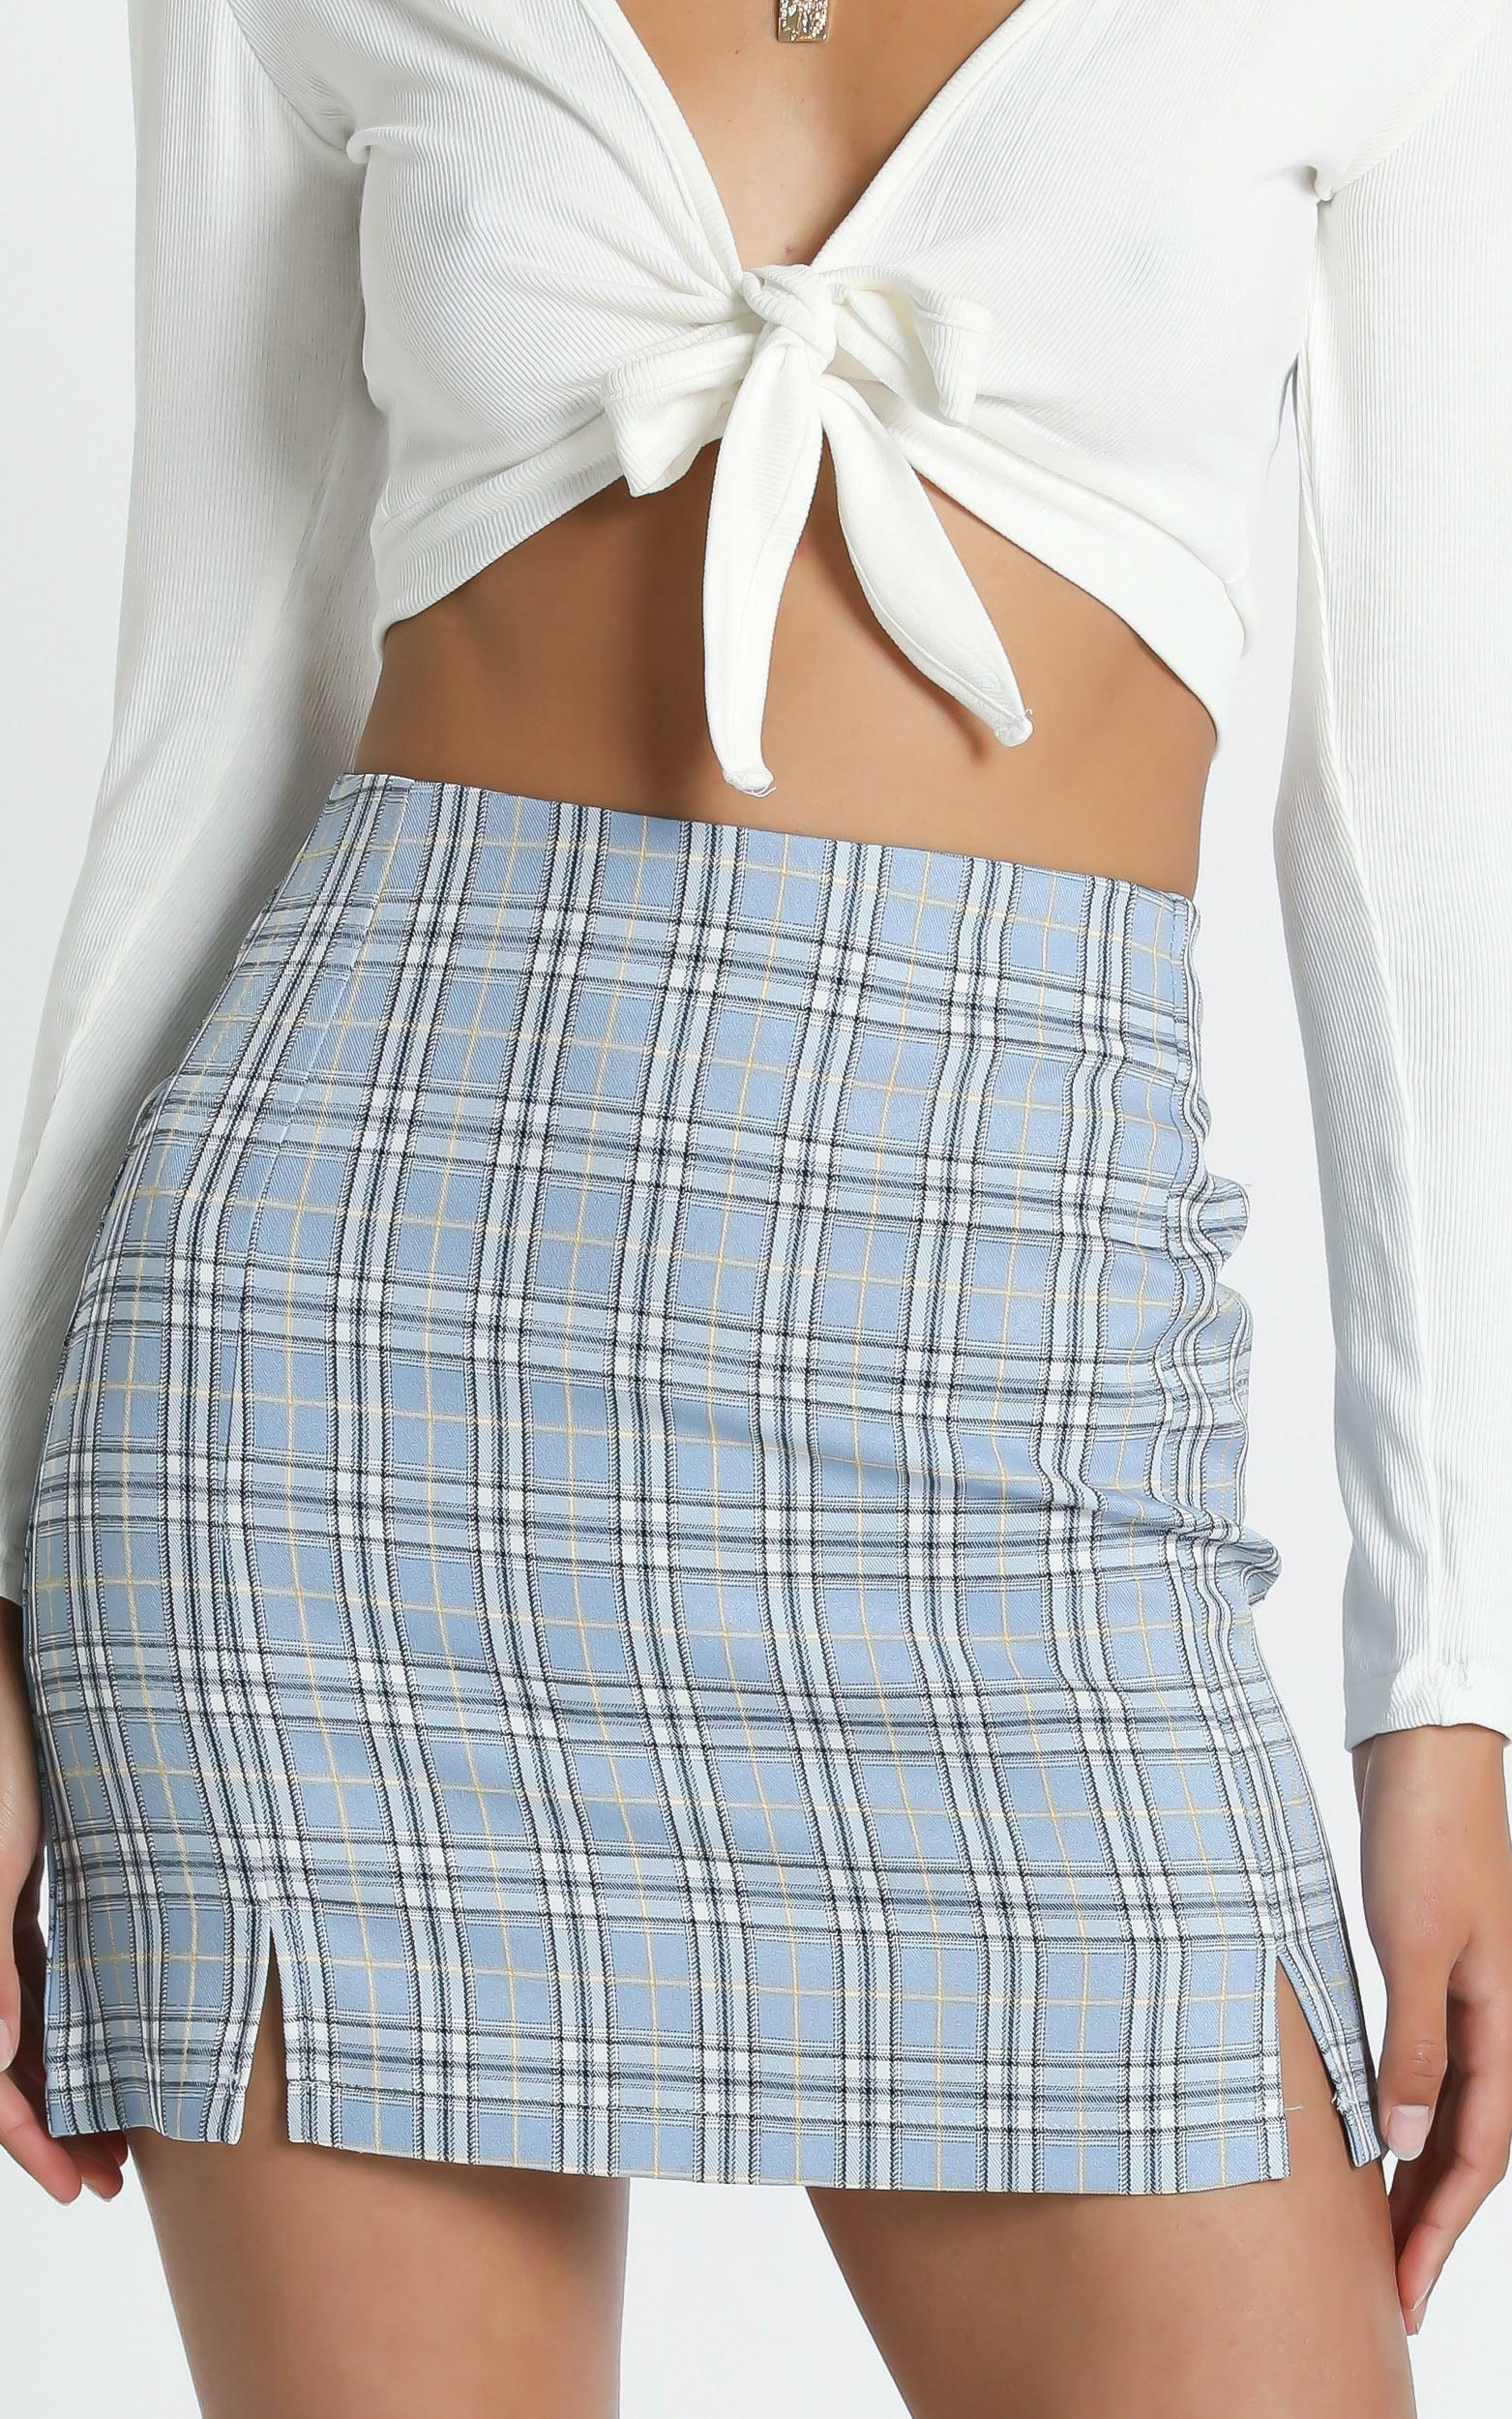 Mae Skirt in Blue check - 8 (S), Blue, hi-res image number null